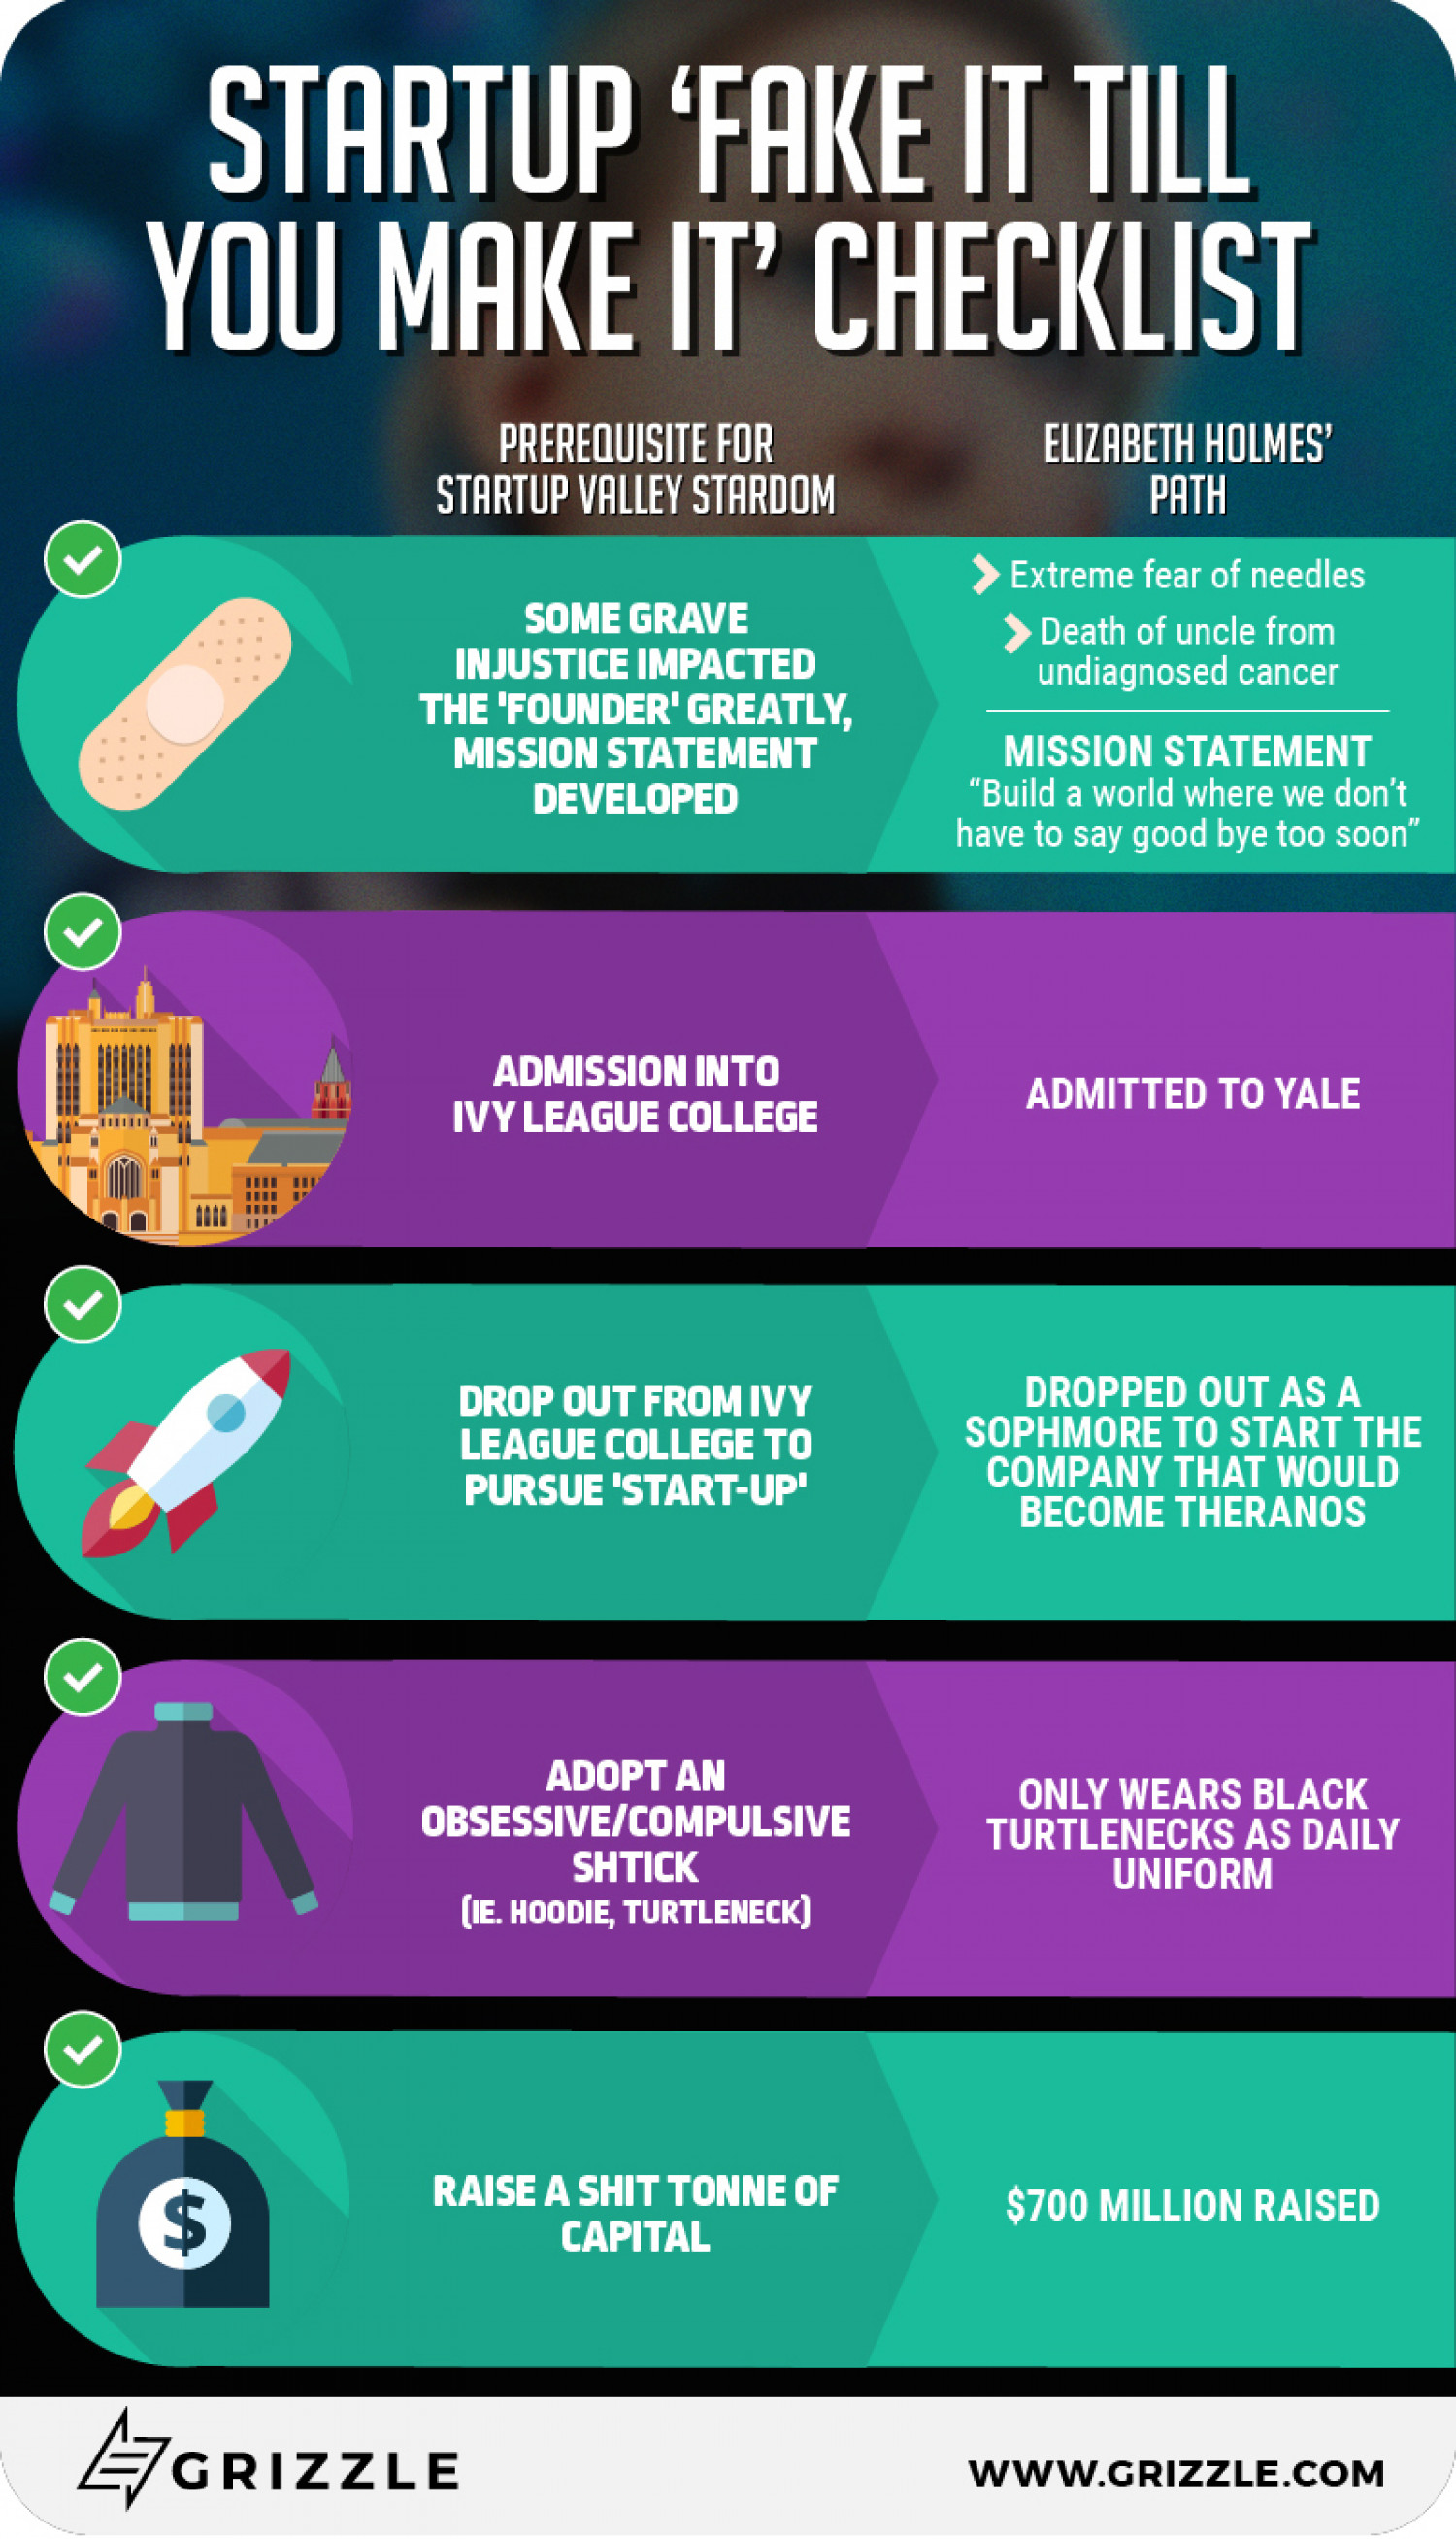 Startup 'Fake it Till You Make it' Checklist Infographic